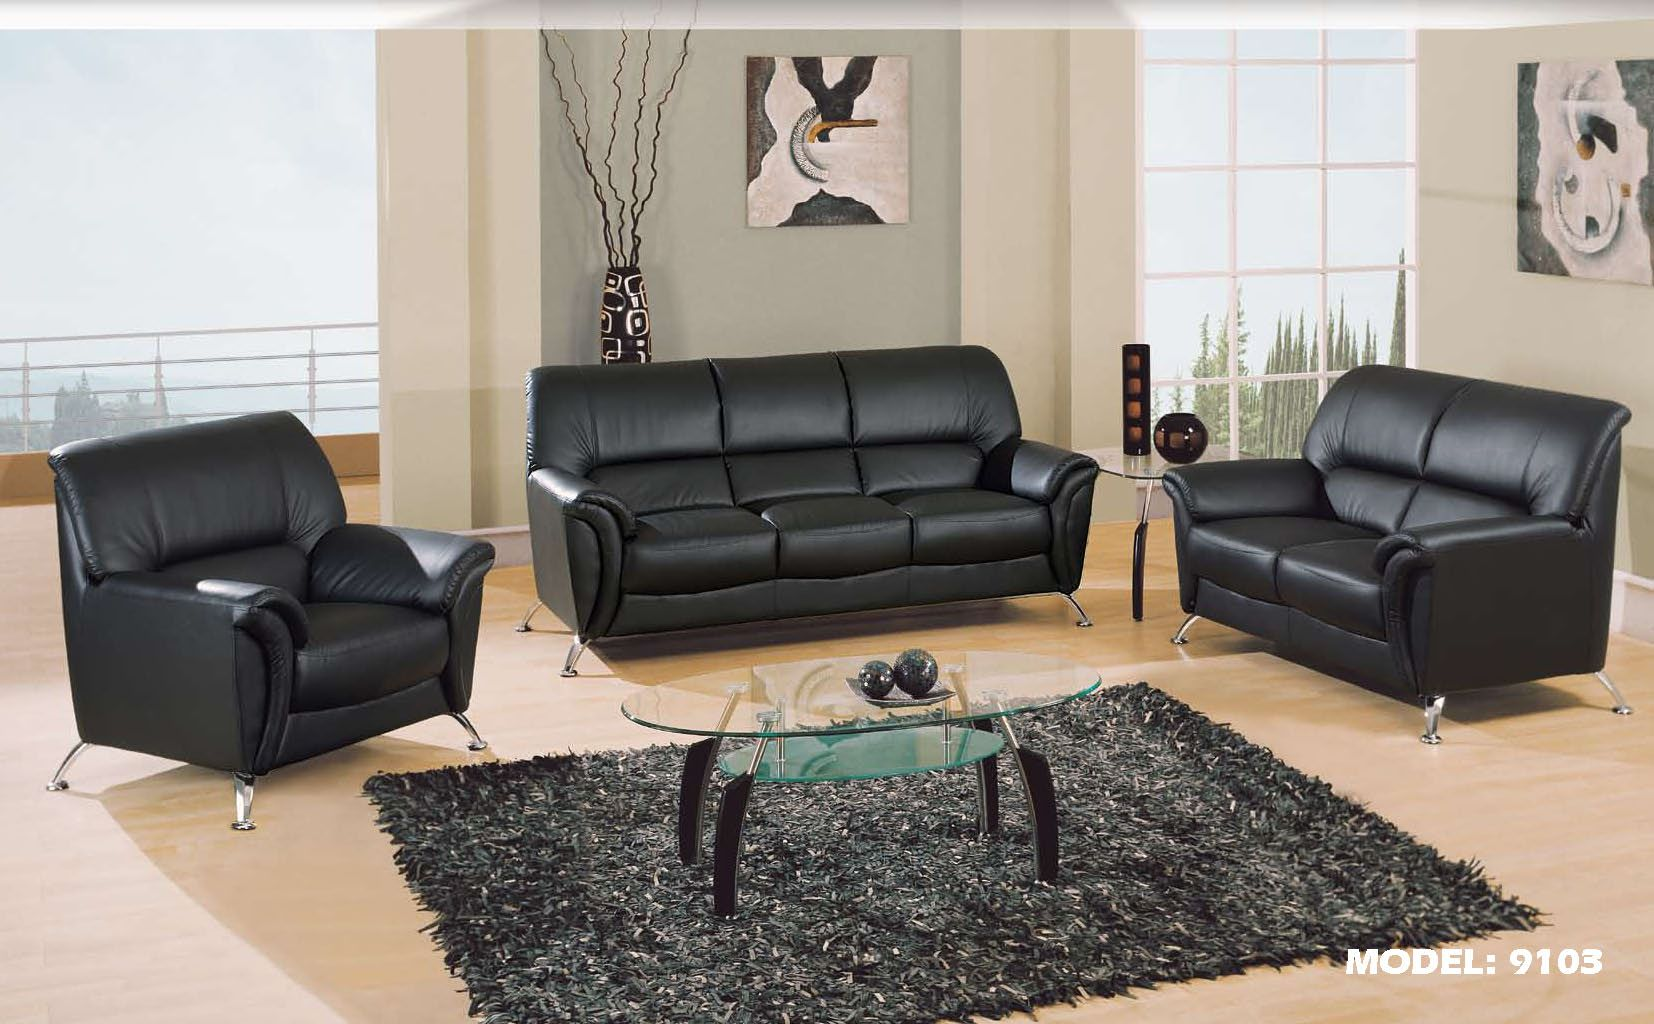 living room furniture budget%0A Sofa set